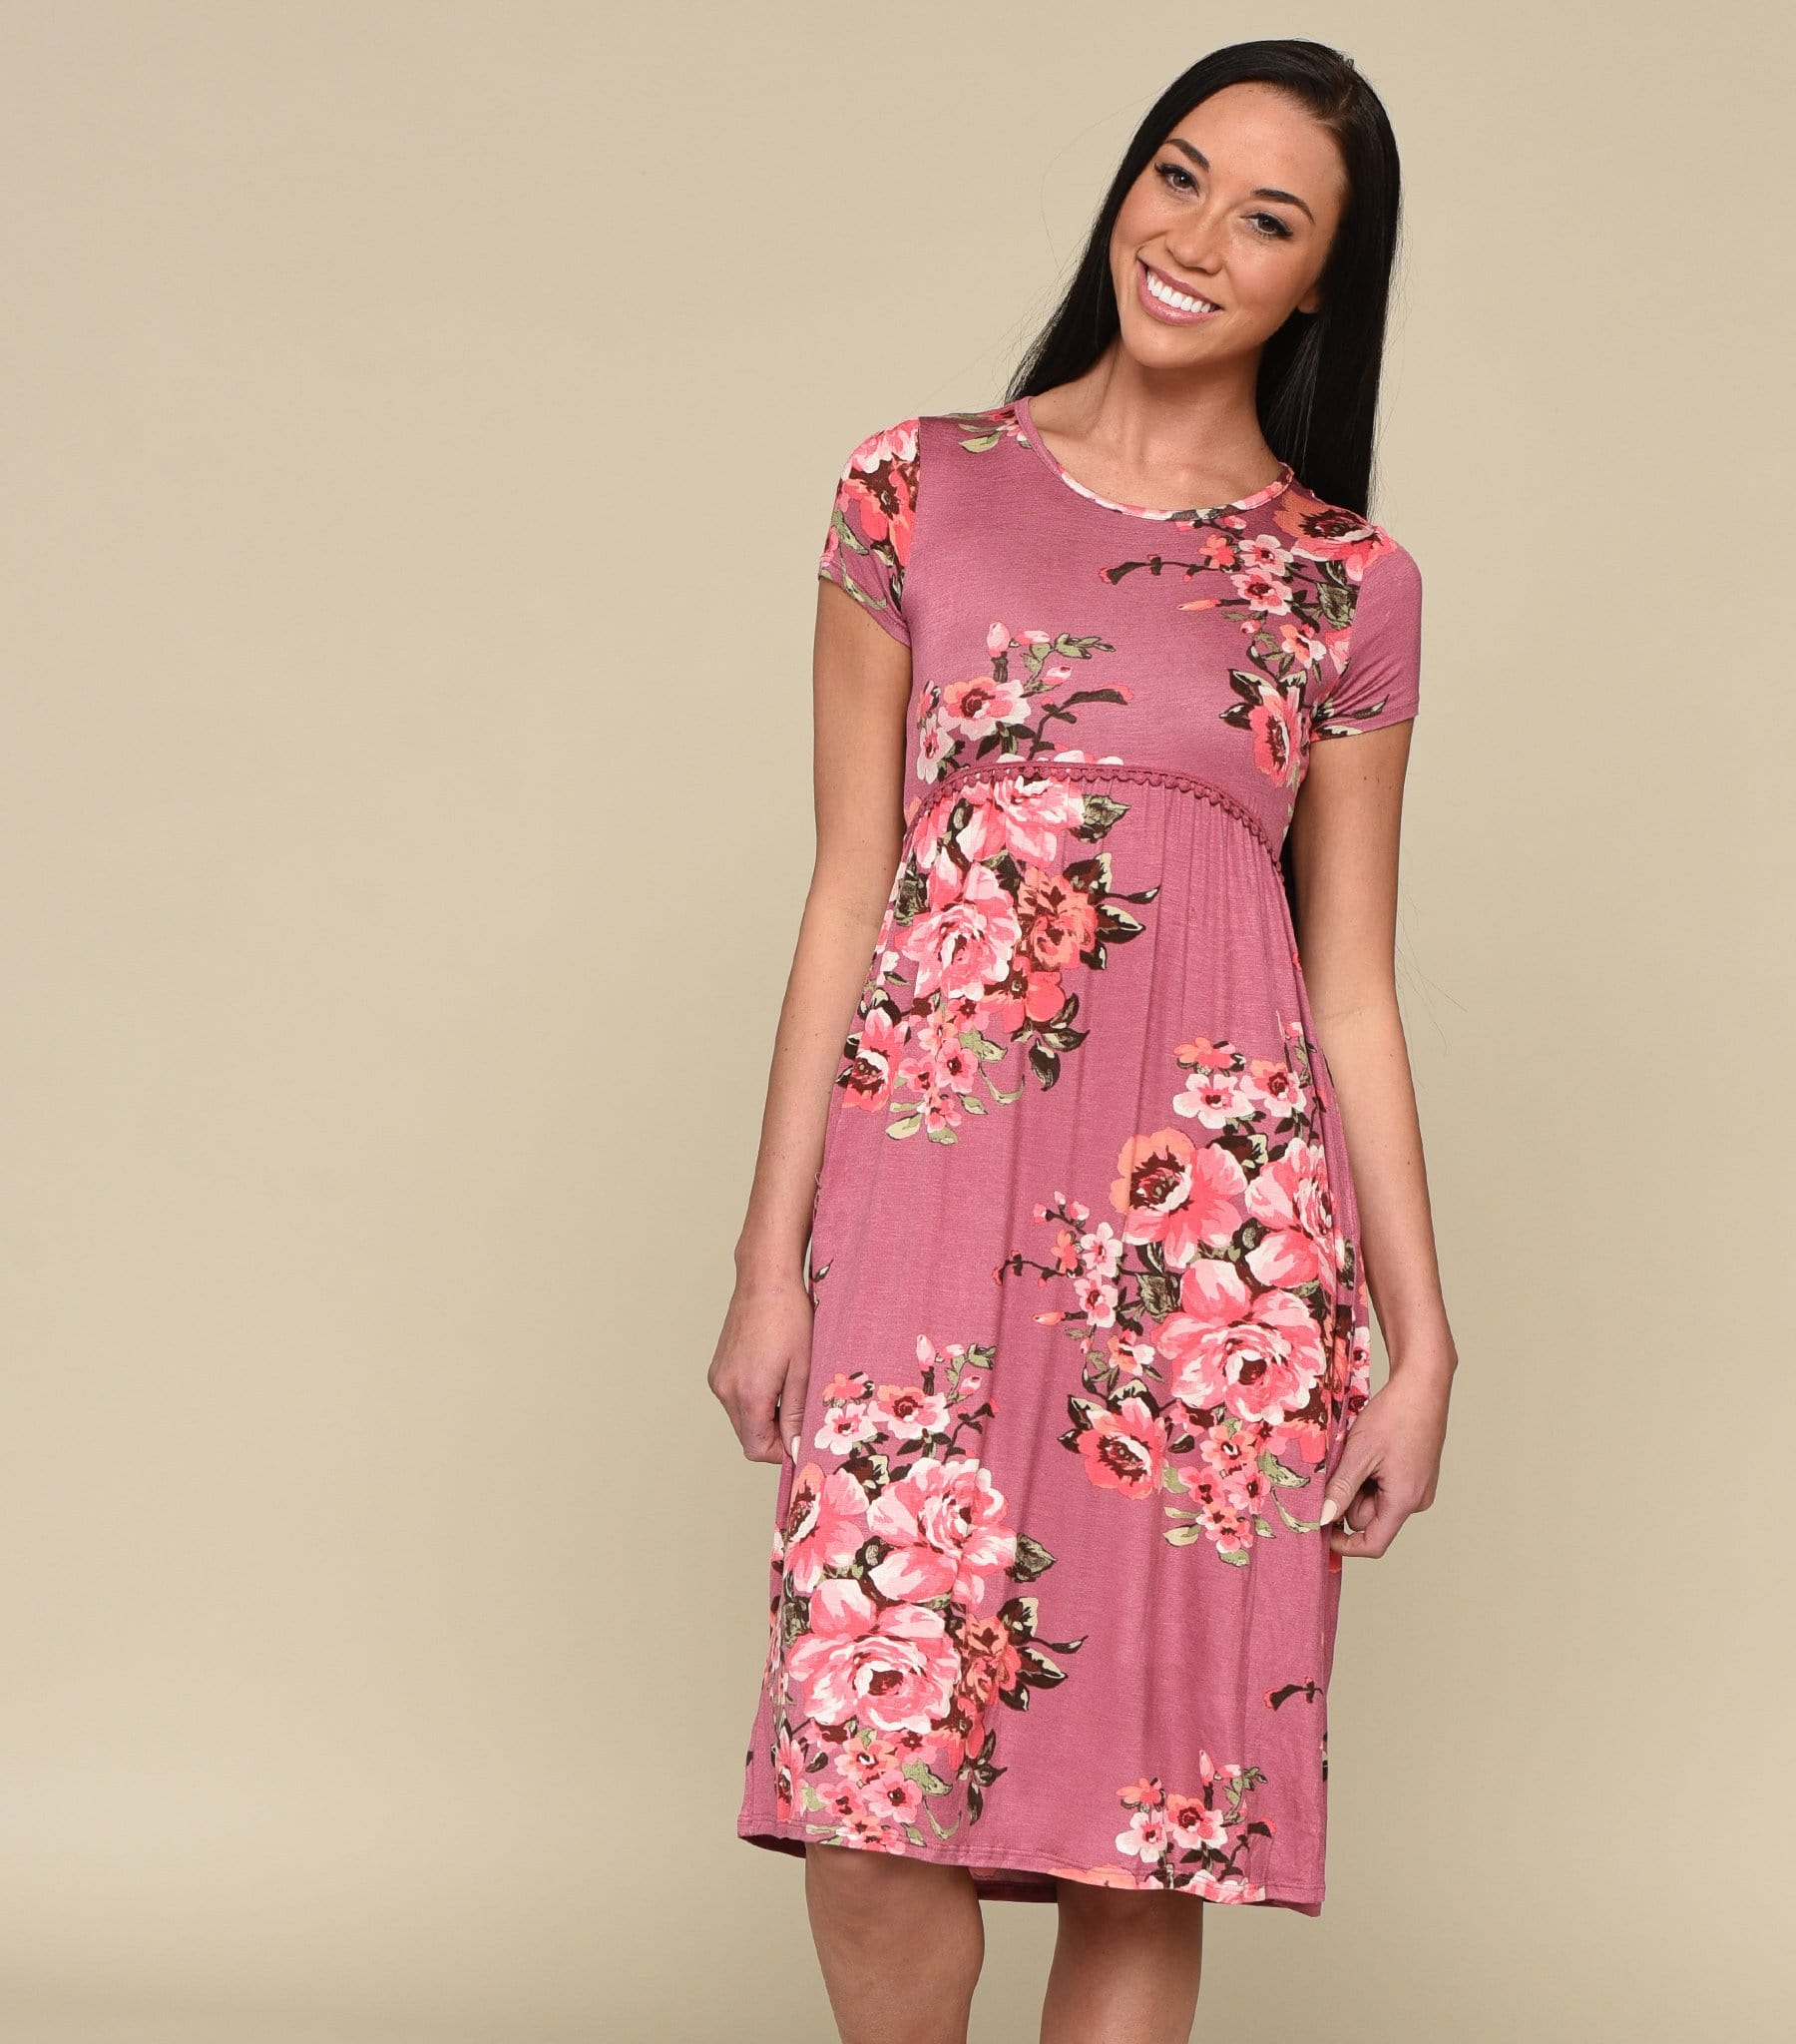 7dd4ea575 Womens Dresses - Downeast